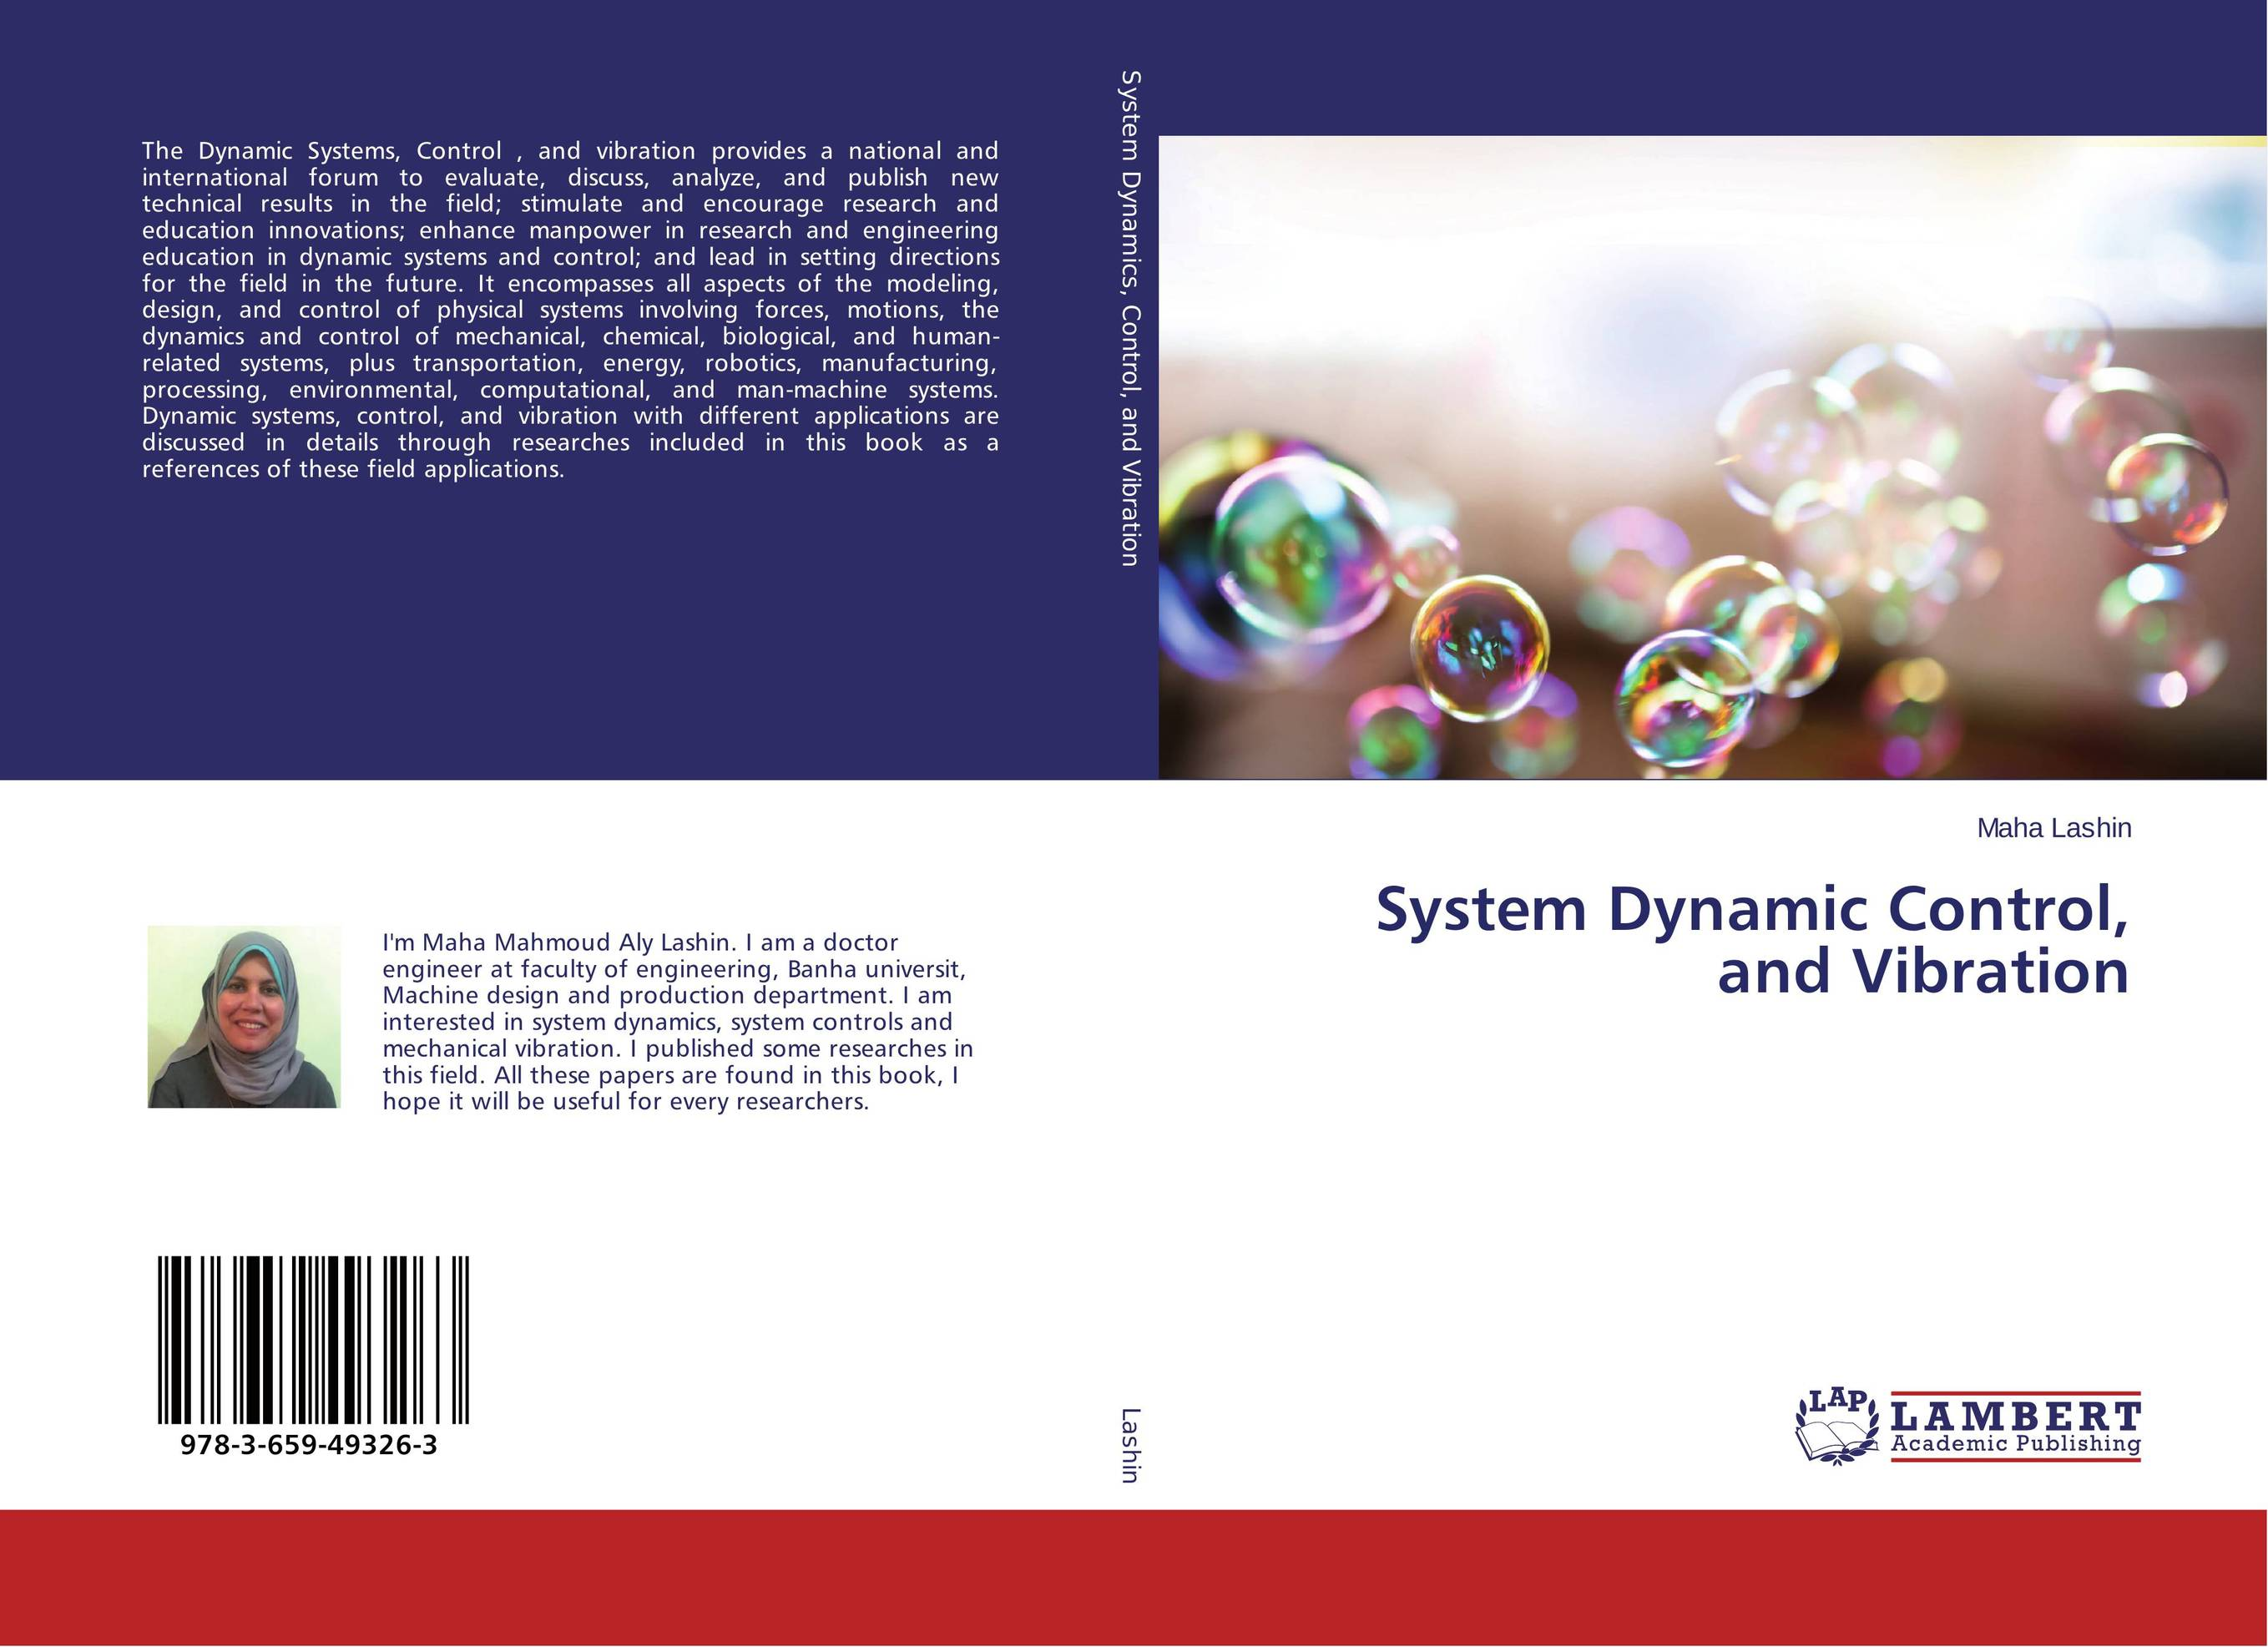 System Dynamic Control, and Vibration